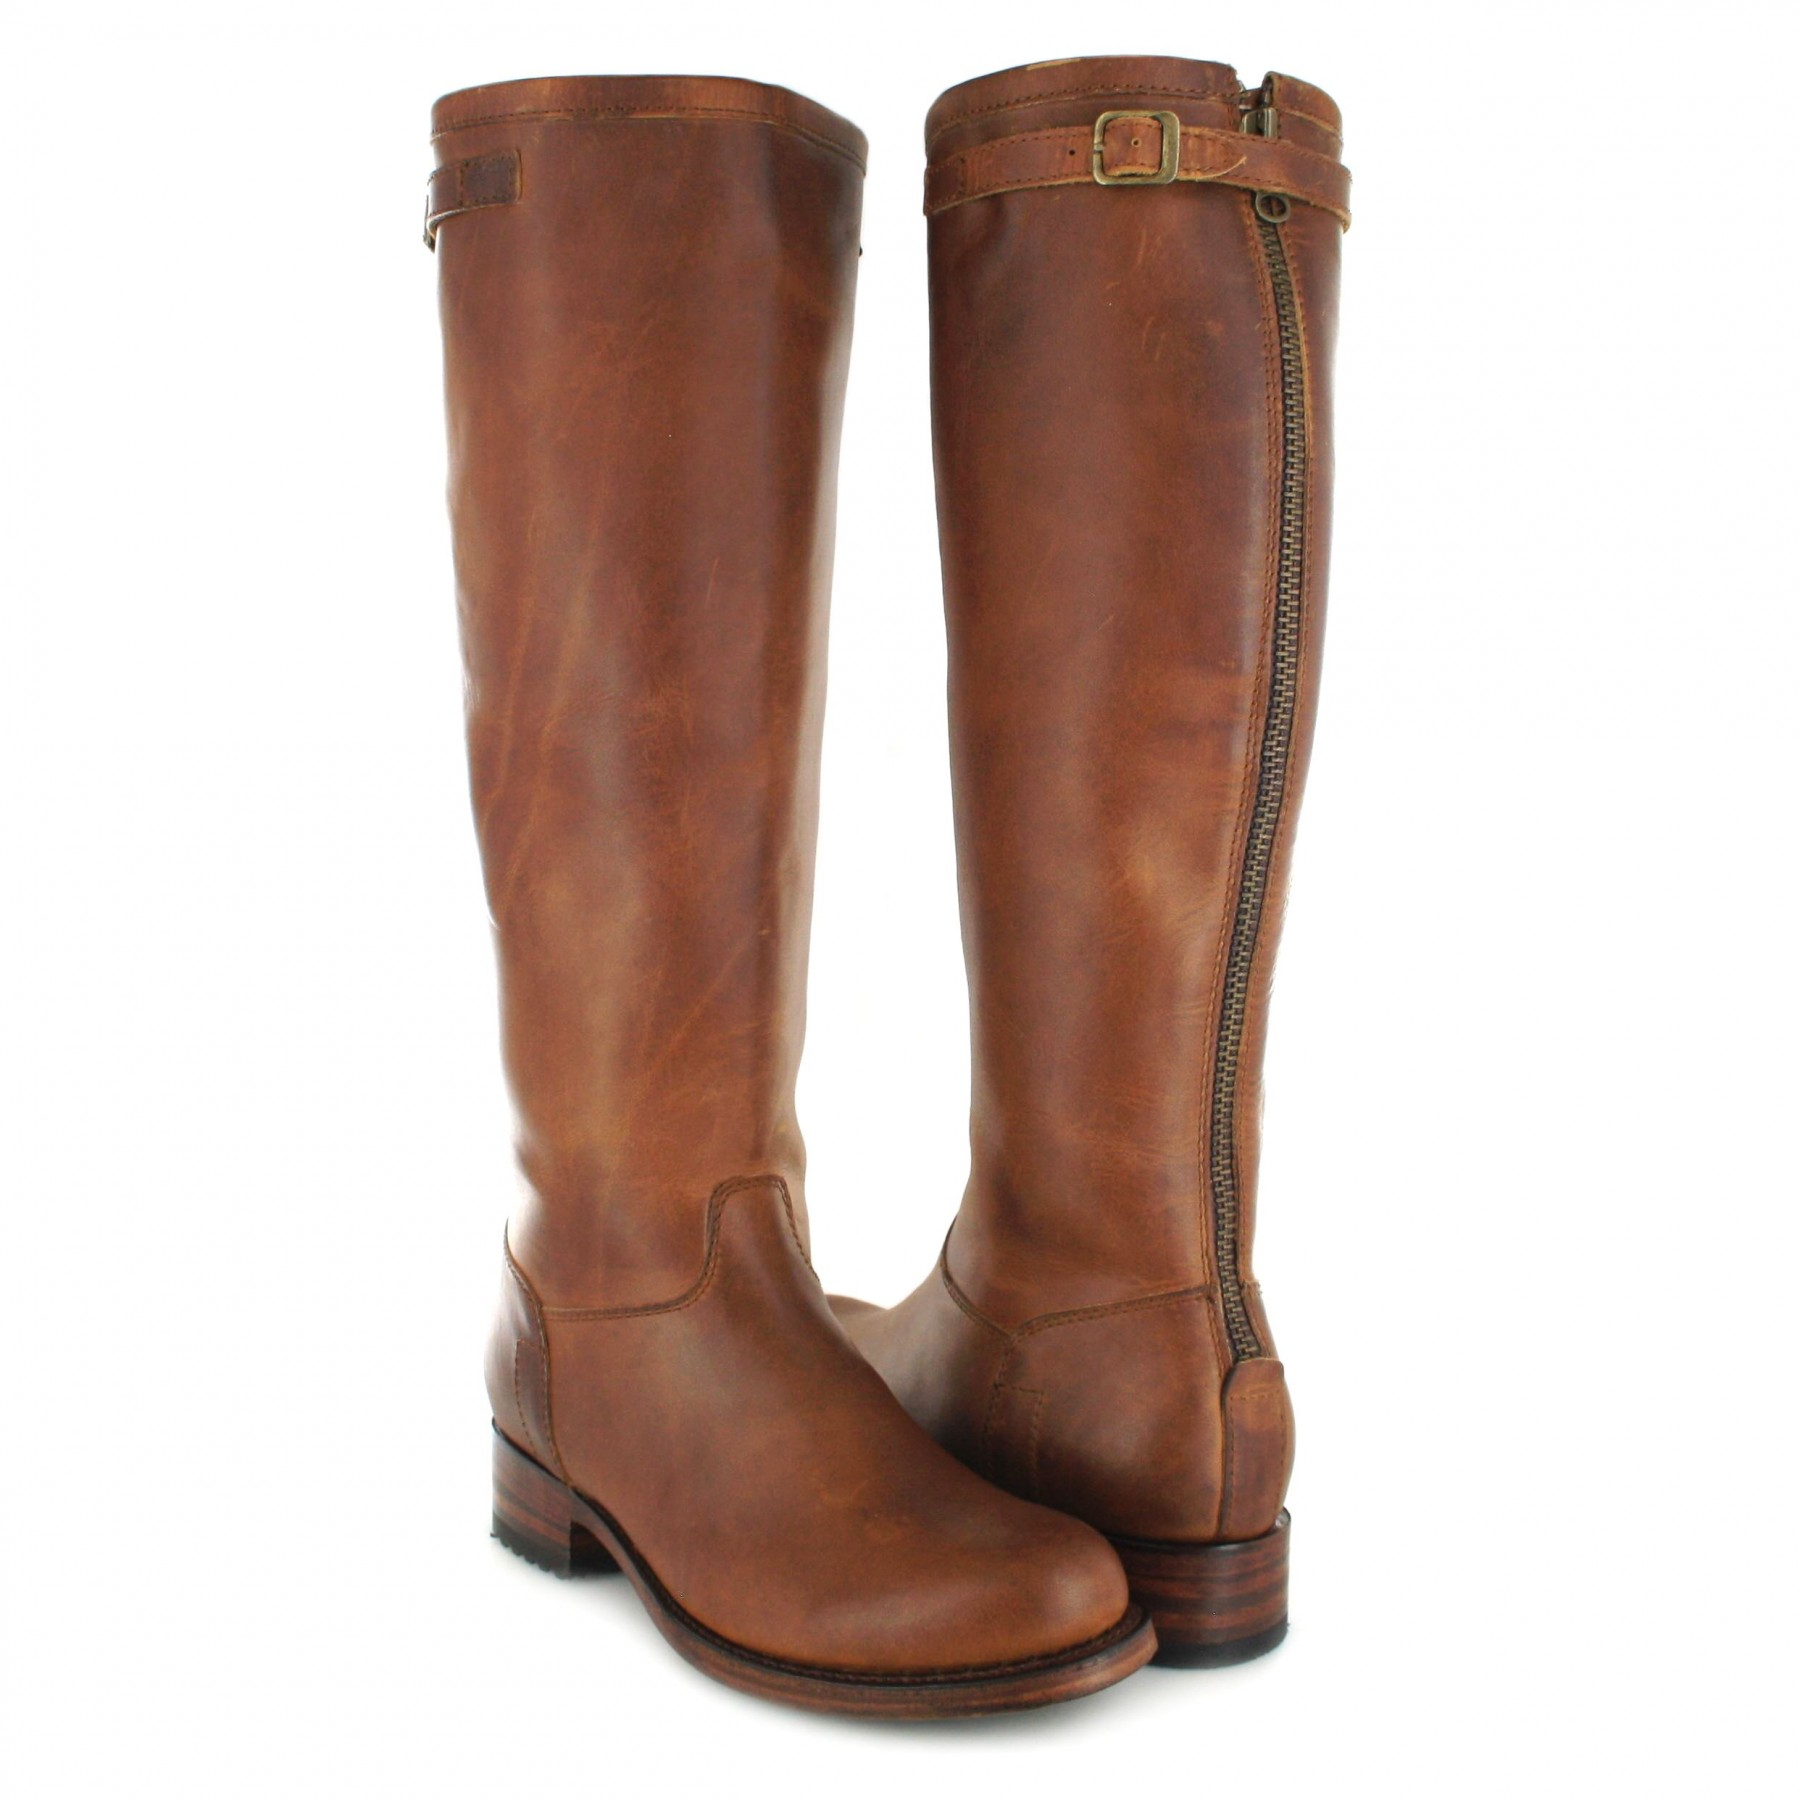 ... sendra boots 11723 tang fashion boot - brown - image 9 ... aoiptnu